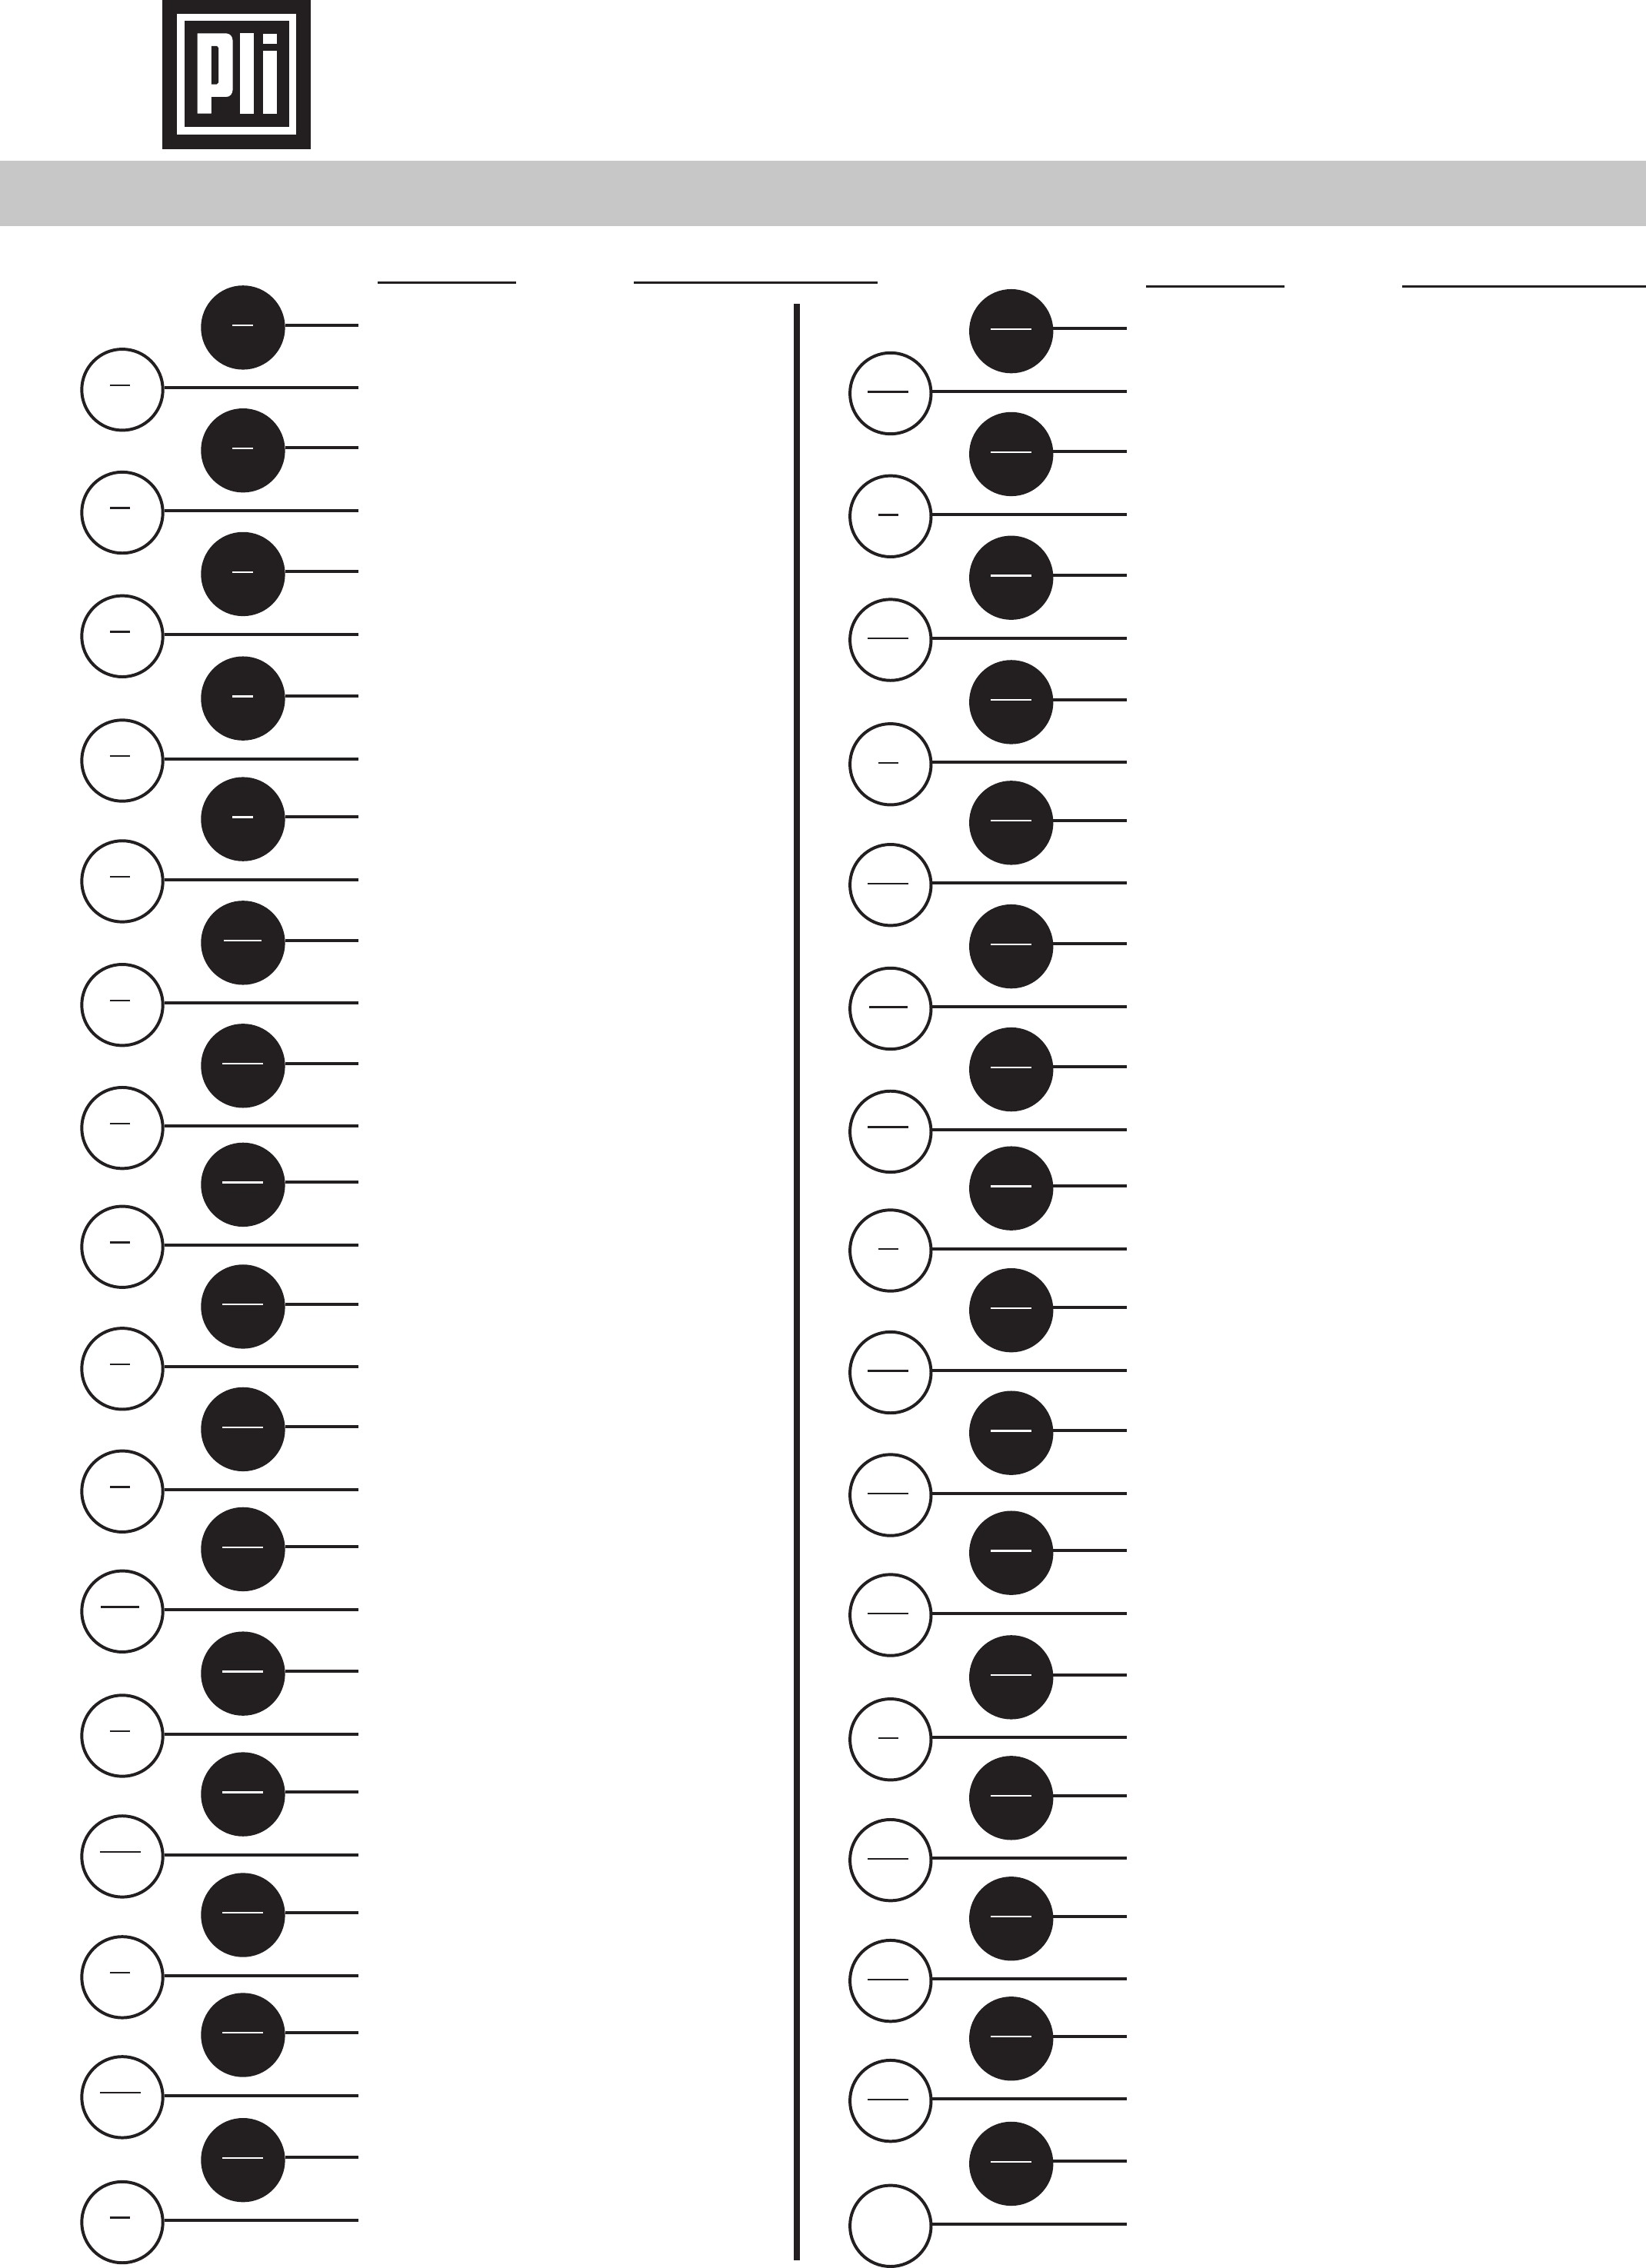 Sample fraction decimal conversion chart free download geenschuldenfo Choice Image